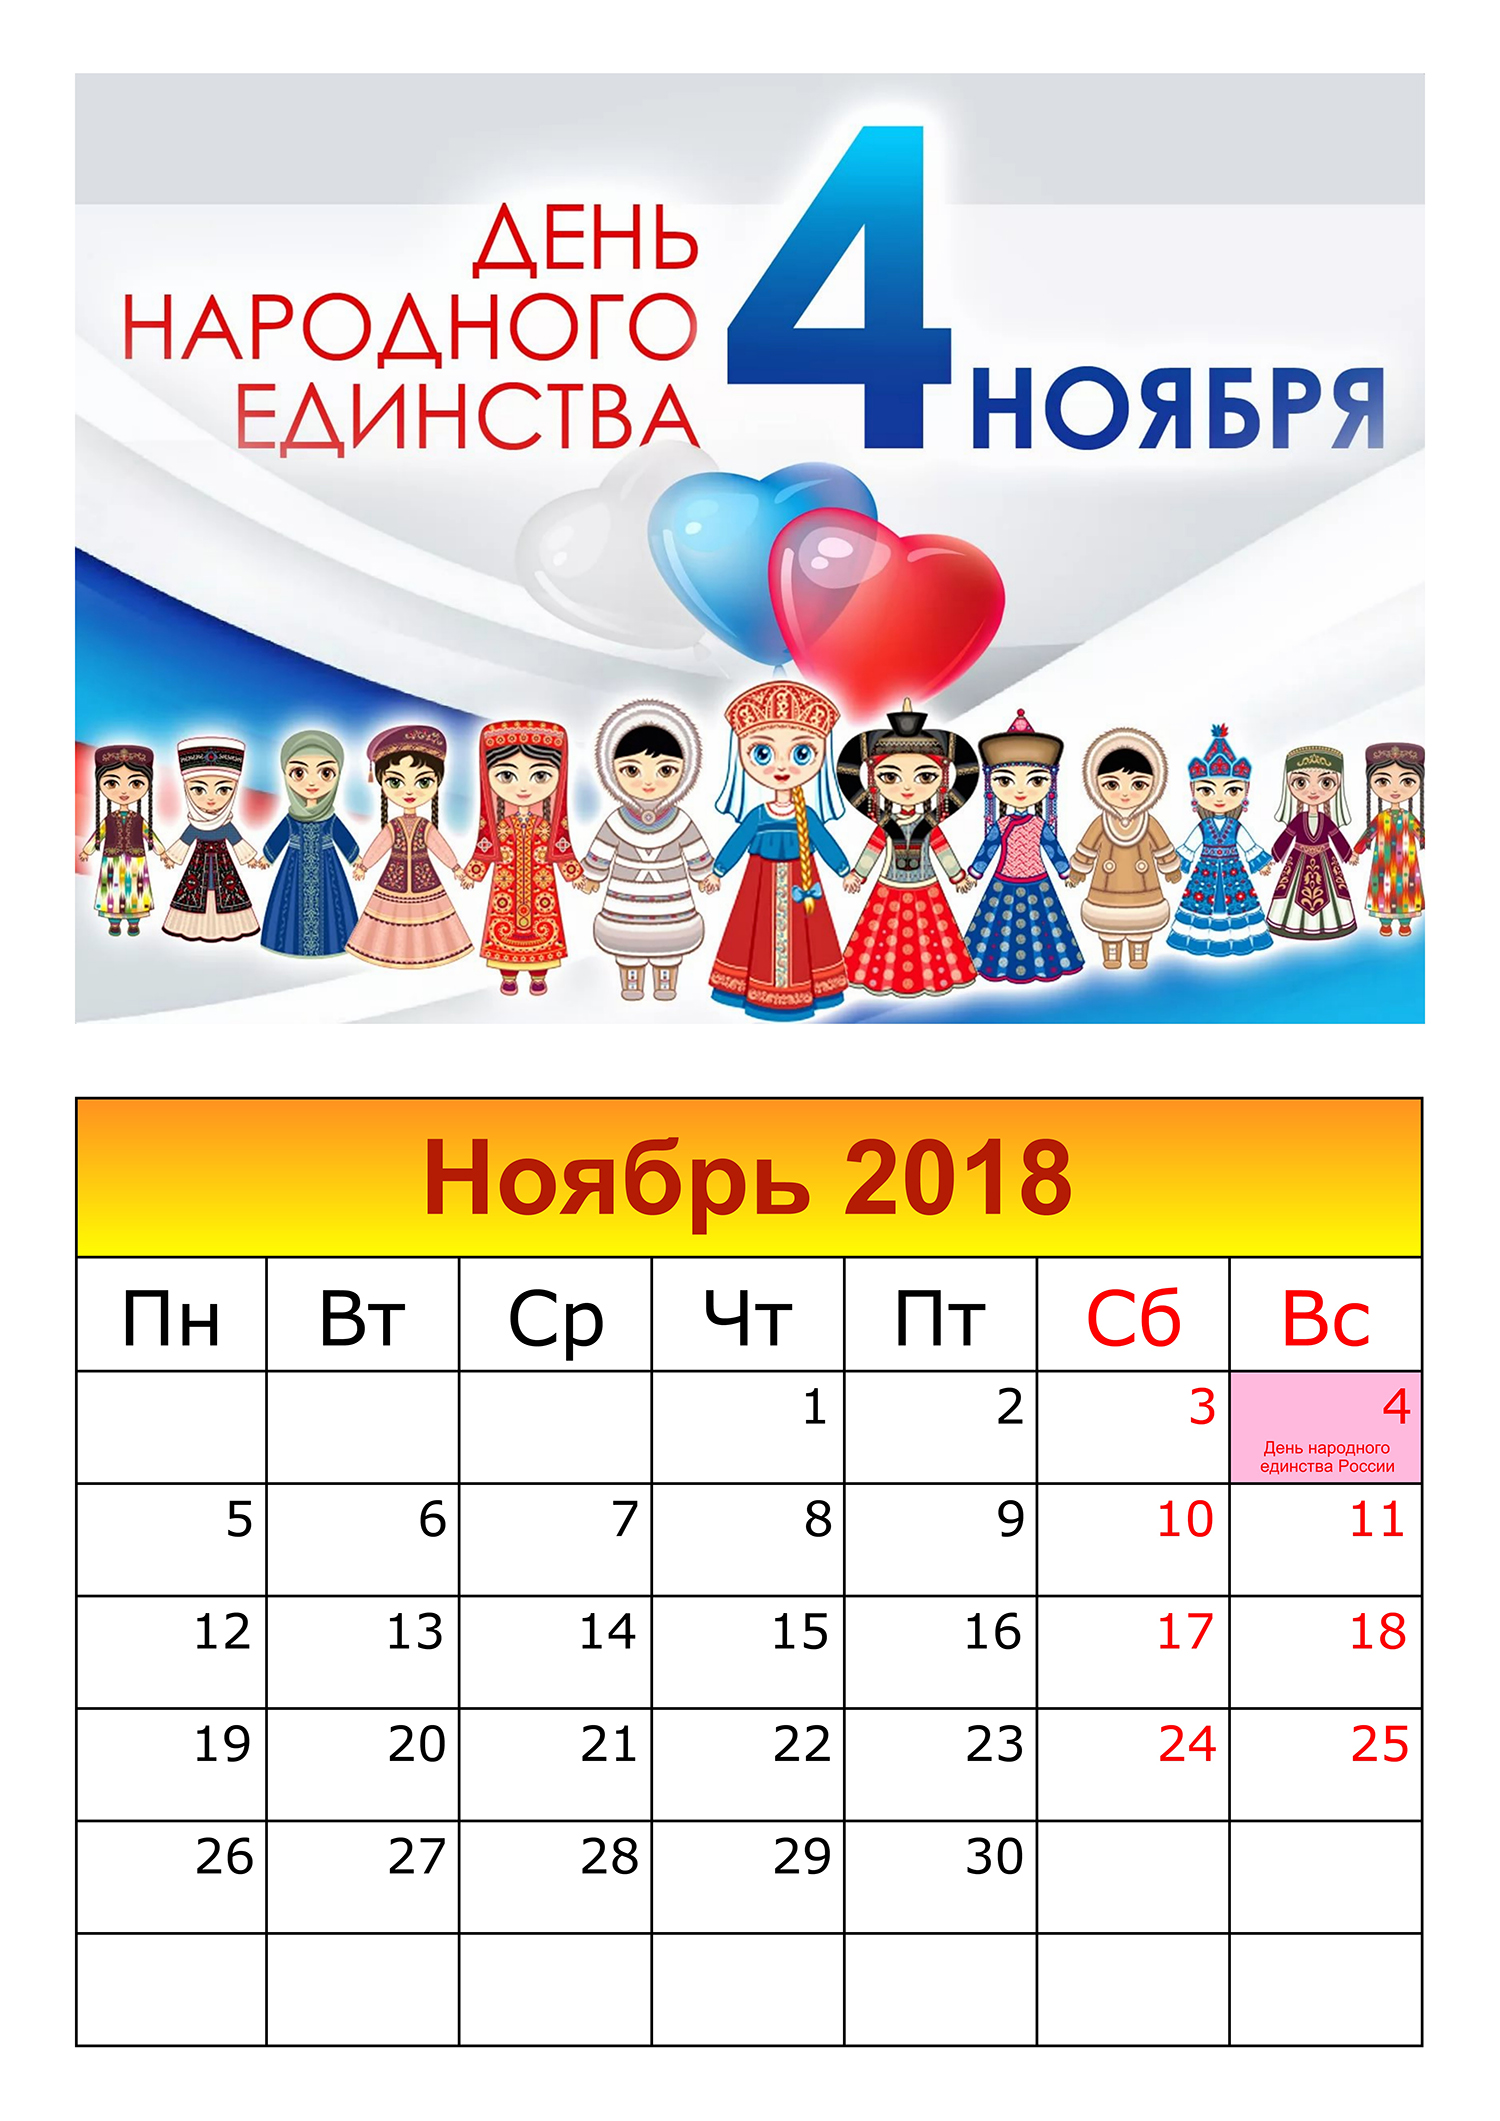 Holidays in November 2018 in Russia. The calendar